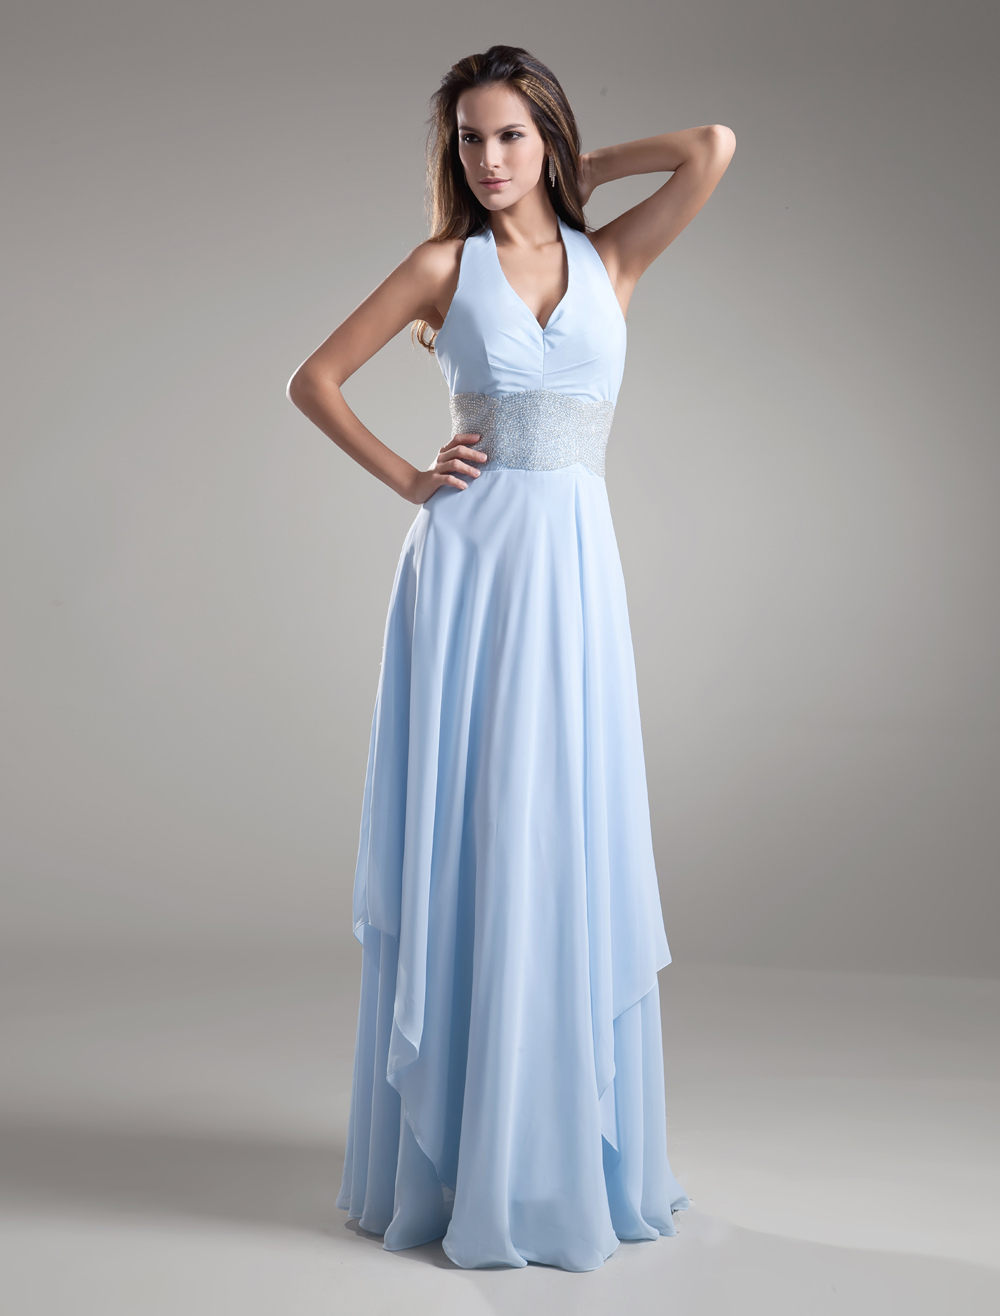 Buy Chiffon Evening Dress Halter Backless Baby Blue Formal Dress Floor Length Beading Waist Long Bridesmaid Dress for $133.19 in Milanoo store